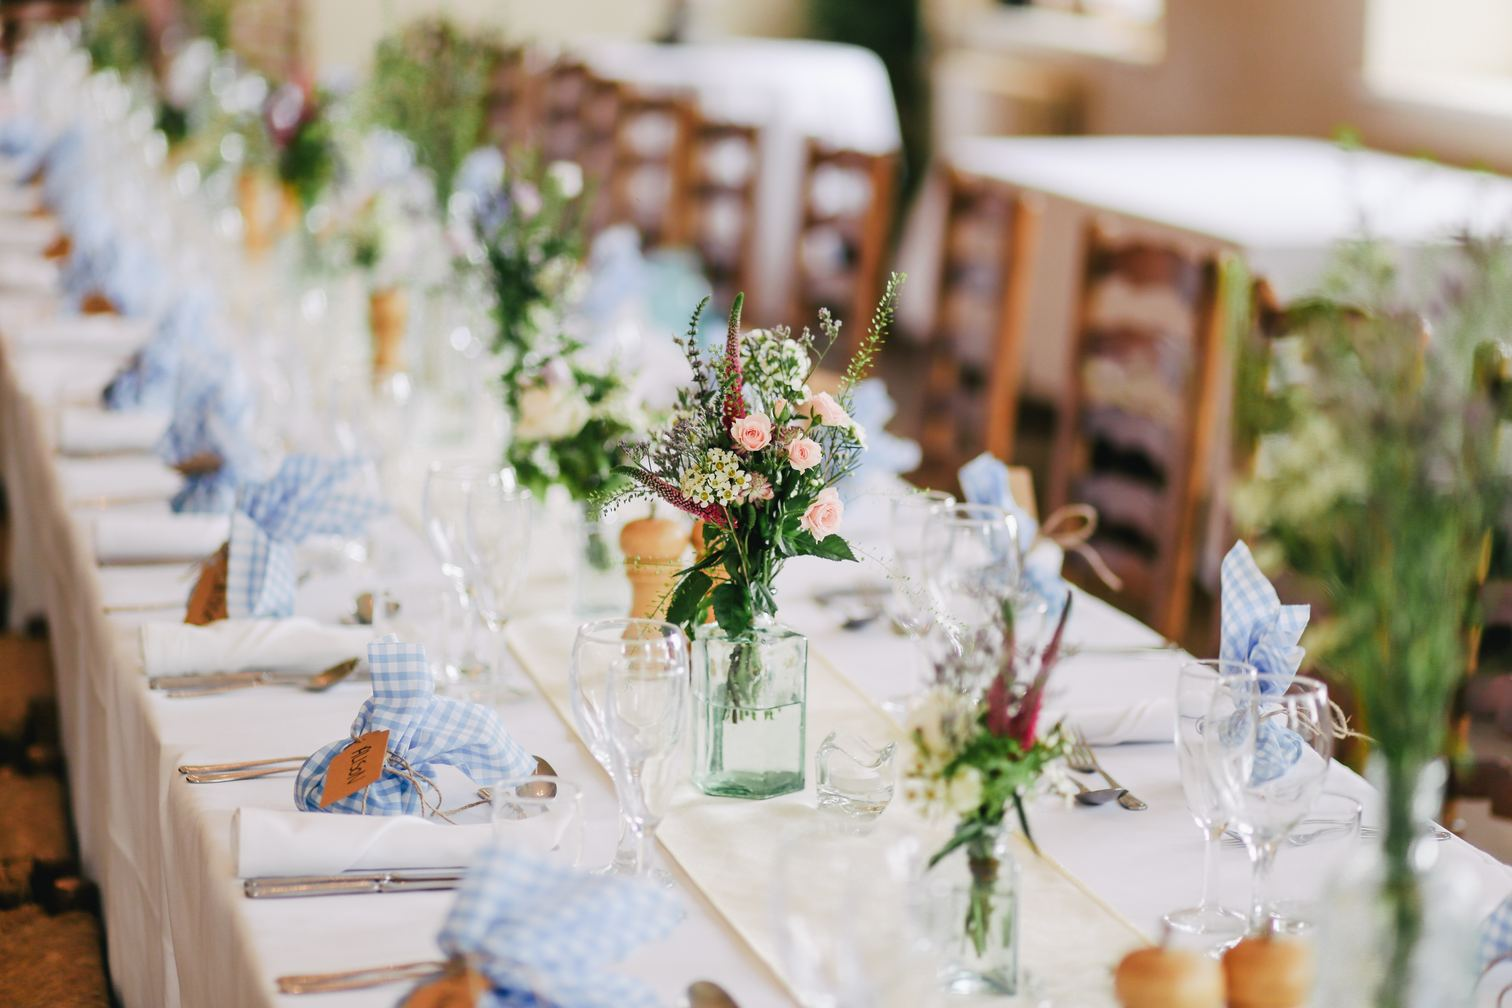 Find unique wedding gifts for every couple